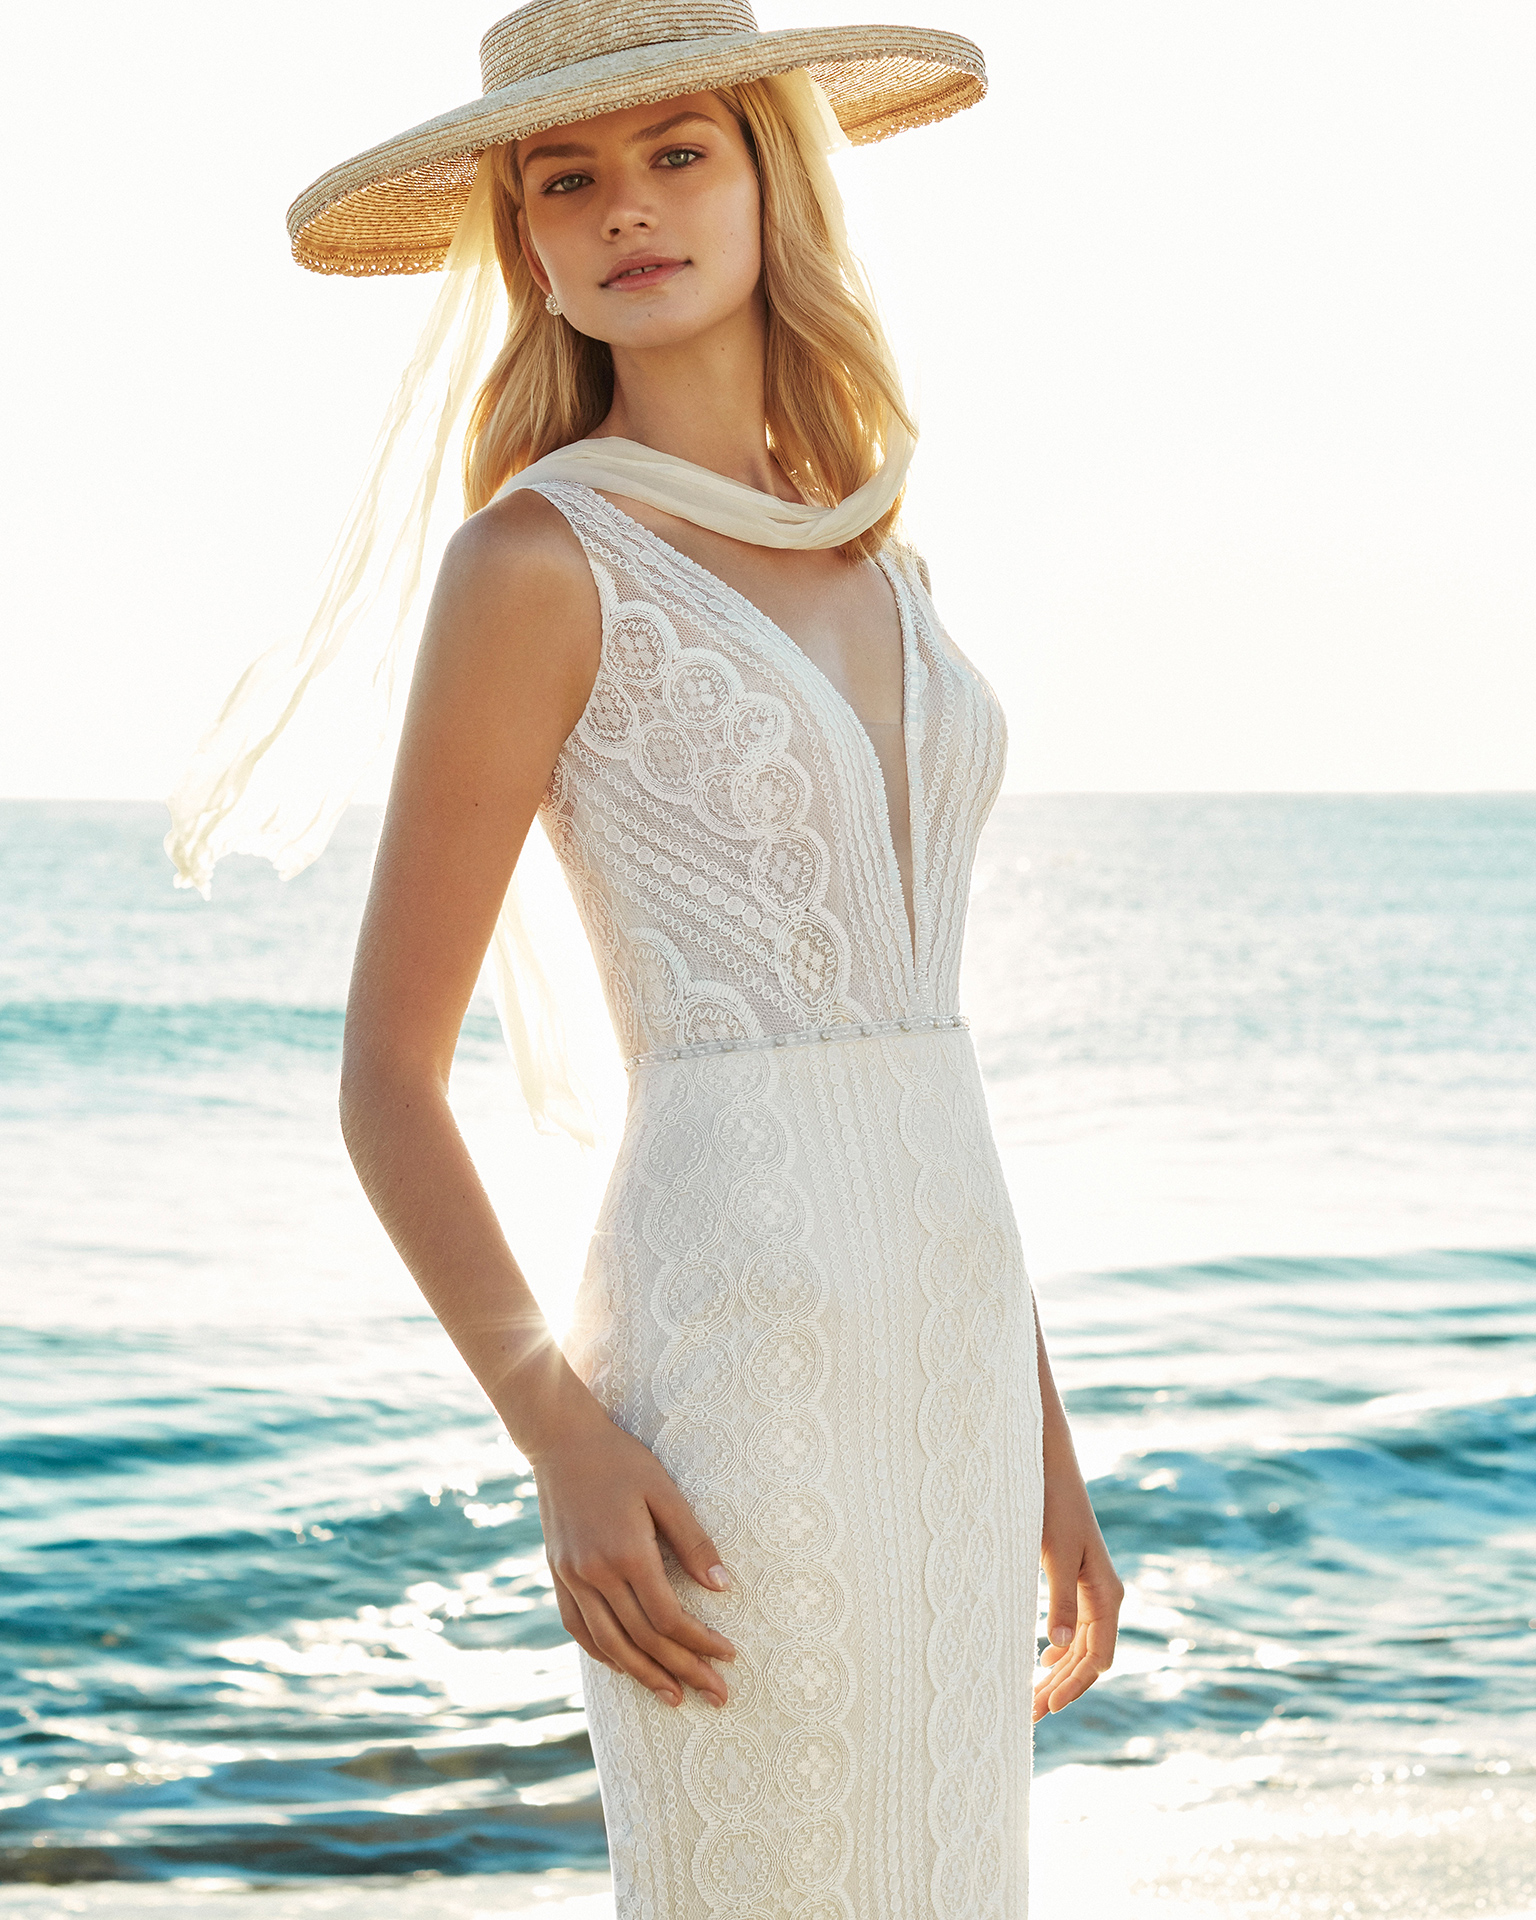 Robe de mariée coupe sirène en dentelle et pierreries. Décolleté plongeant et décolleté dans le dos. Disponible en couleur naturelle/nude. Collection AIRE BEACH WEDDING 2019.